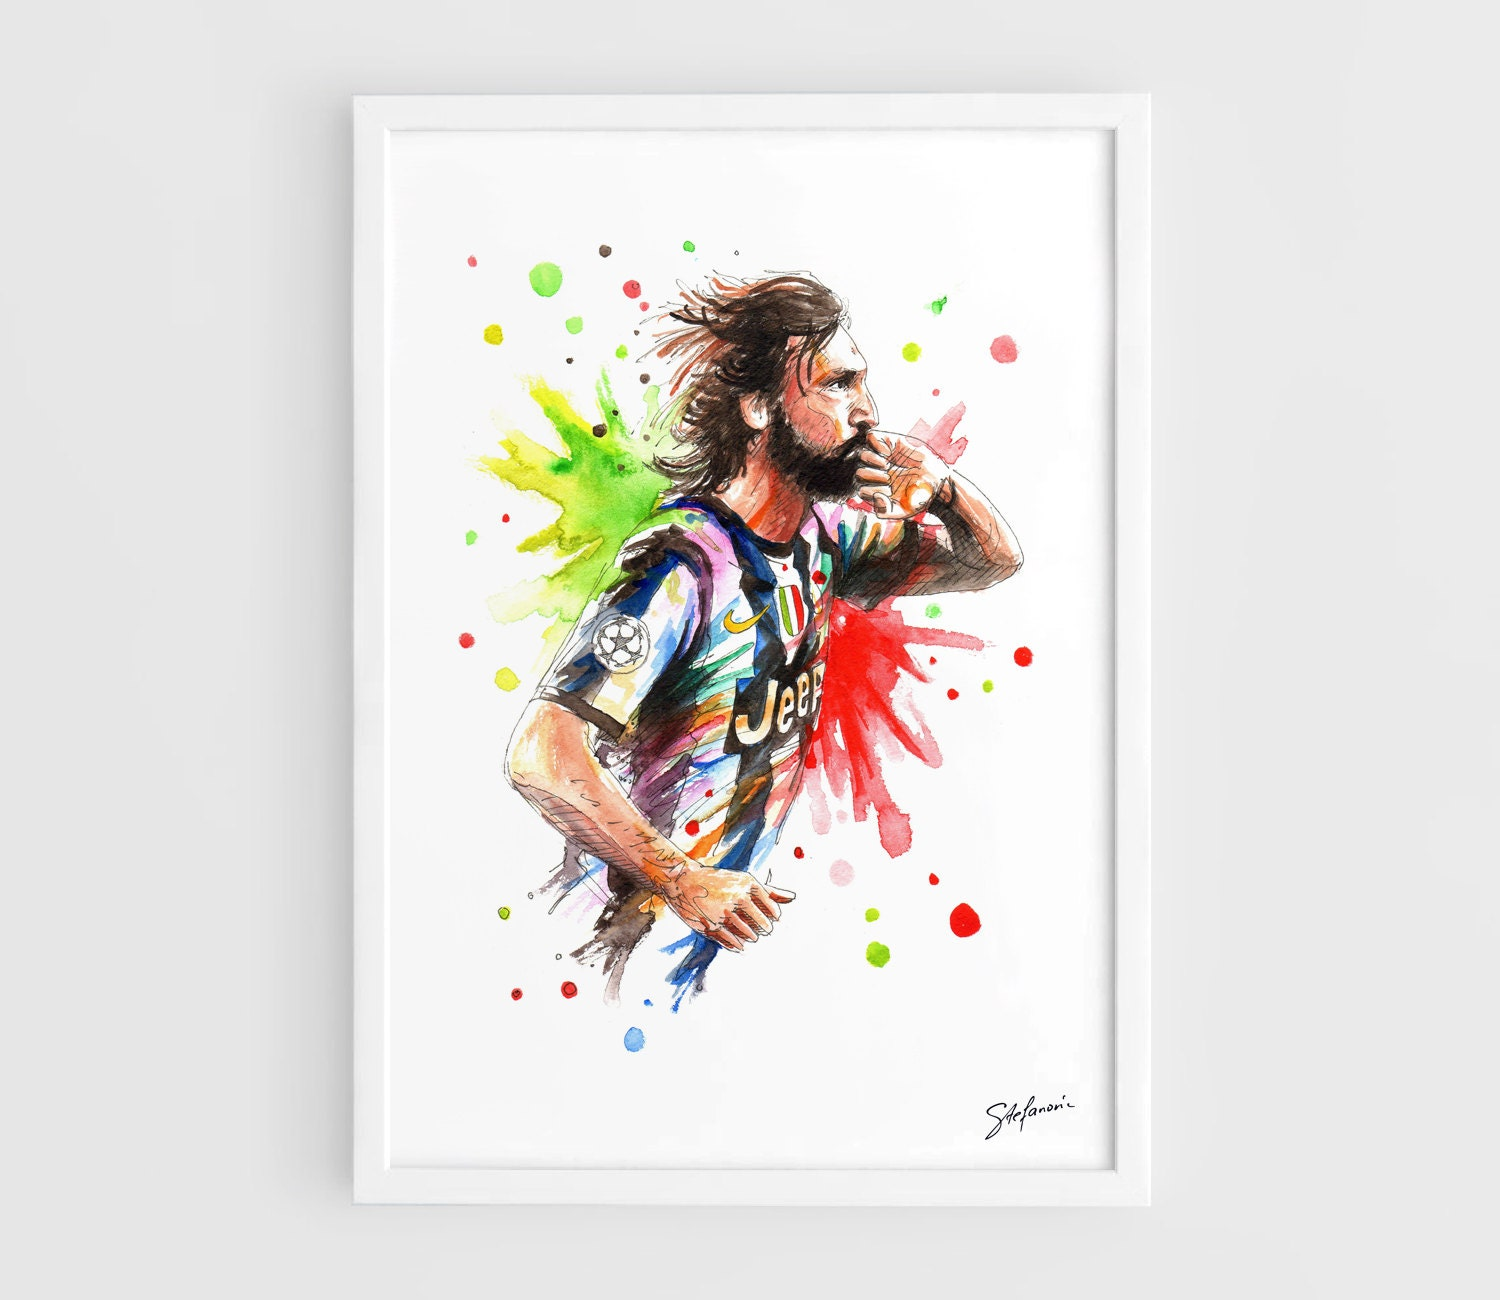 Andrea Pirlo Juventus FC A3 Wall Art Print Poster of the